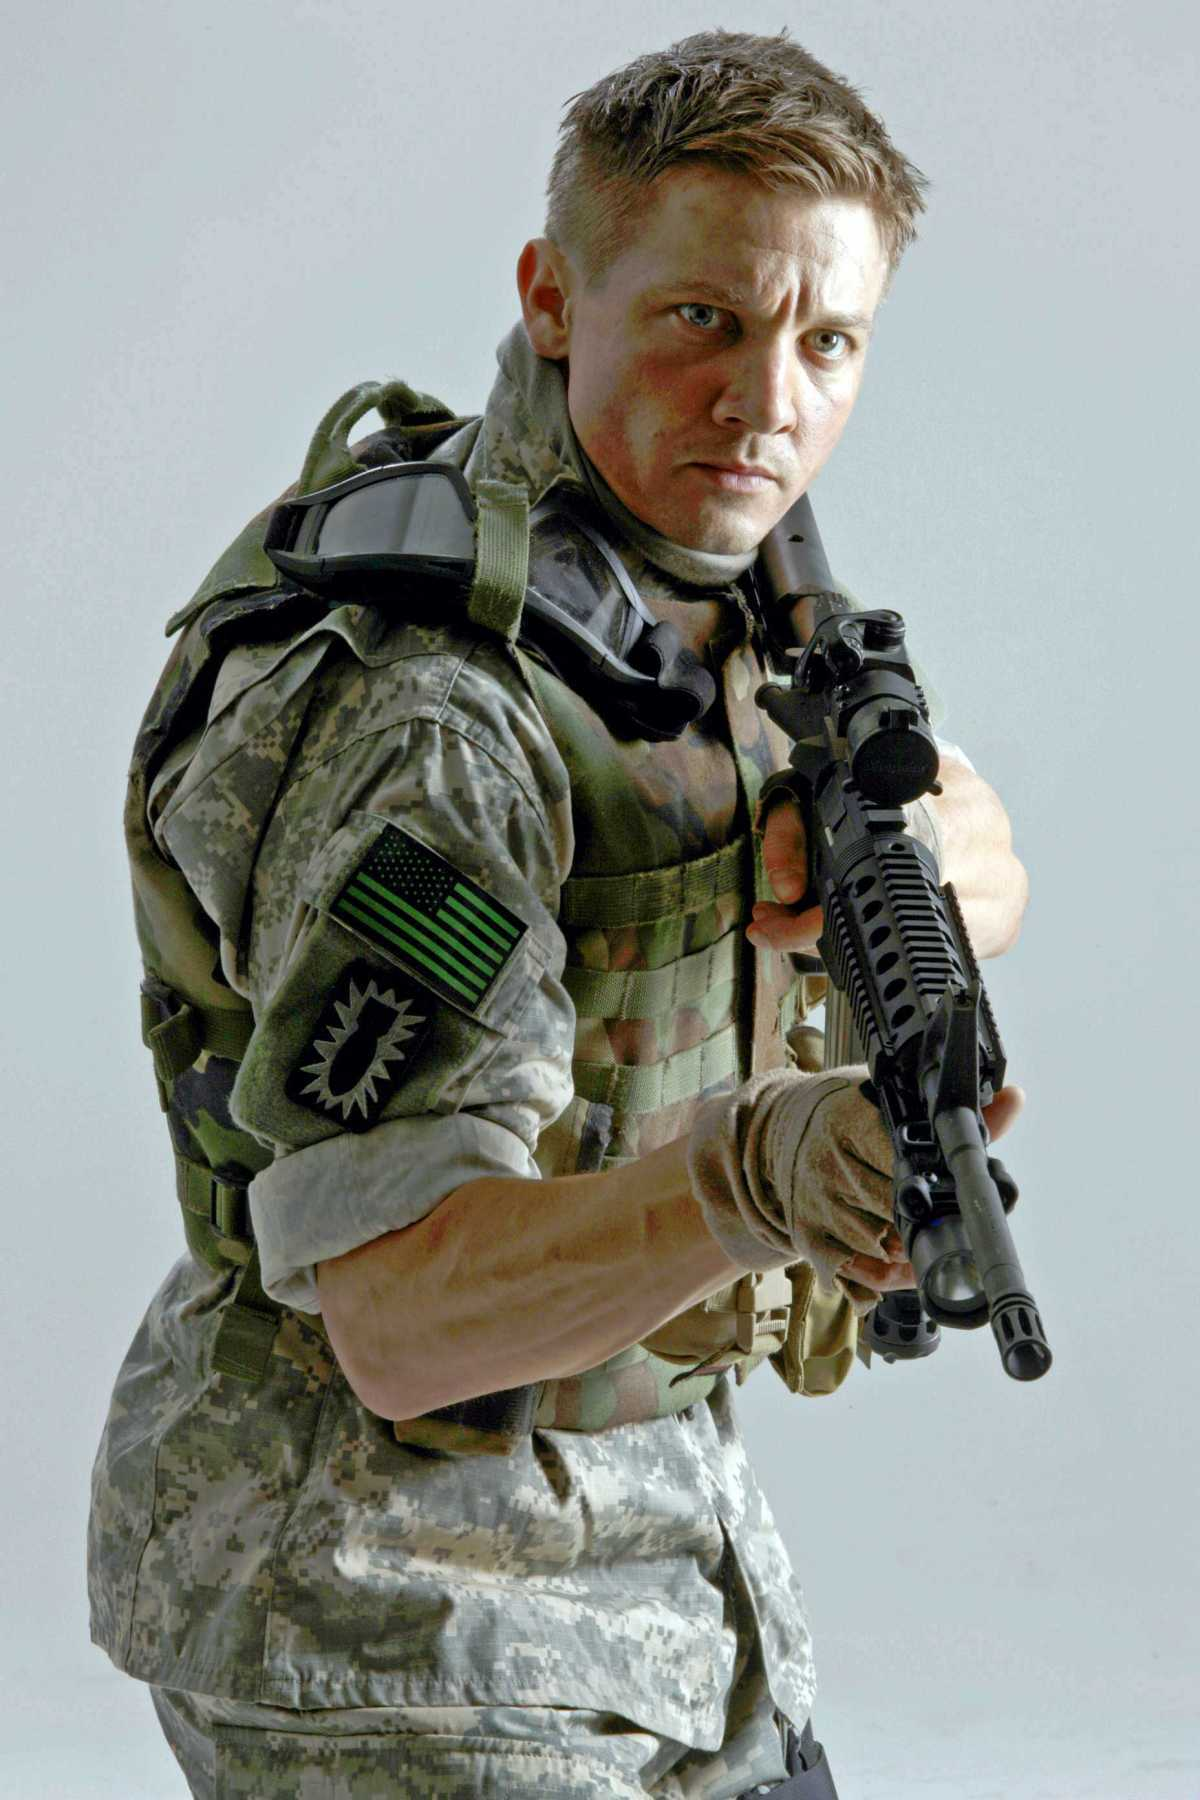 Jeremy Renner in The Hurt Locker